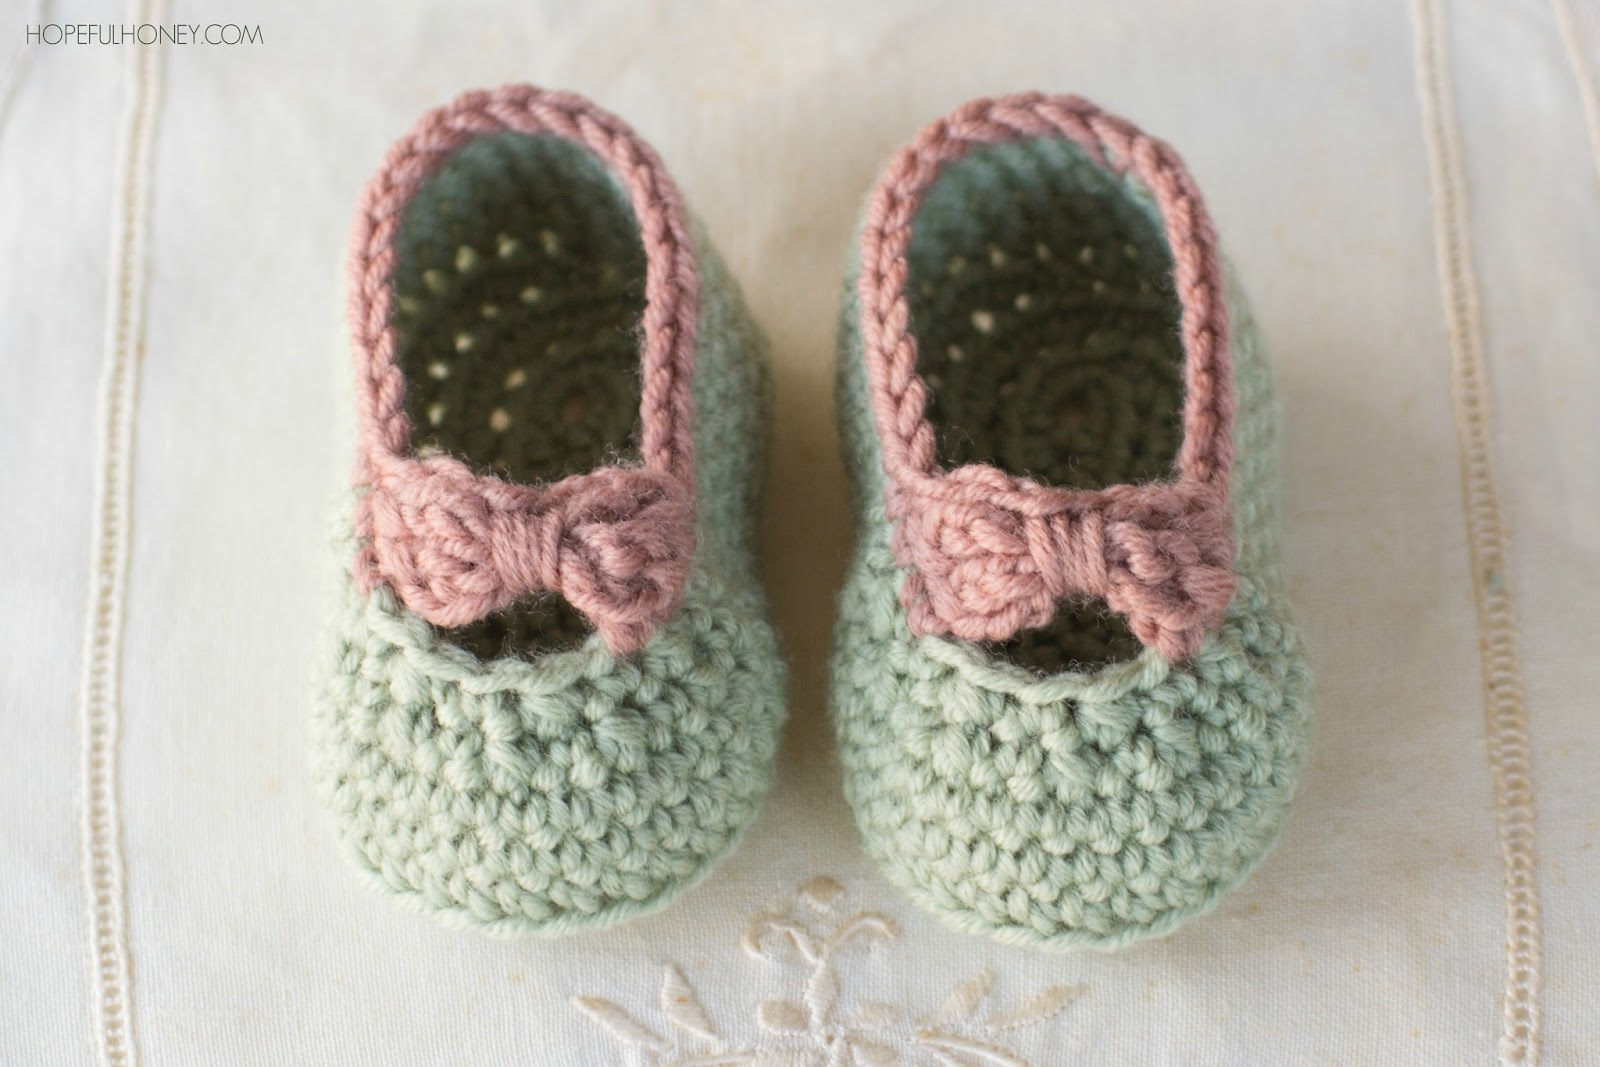 Crochet Baby Hat Booties Patterns Free : Hopeful Honey Craft, Crochet, Create: Little Lady Baby ...